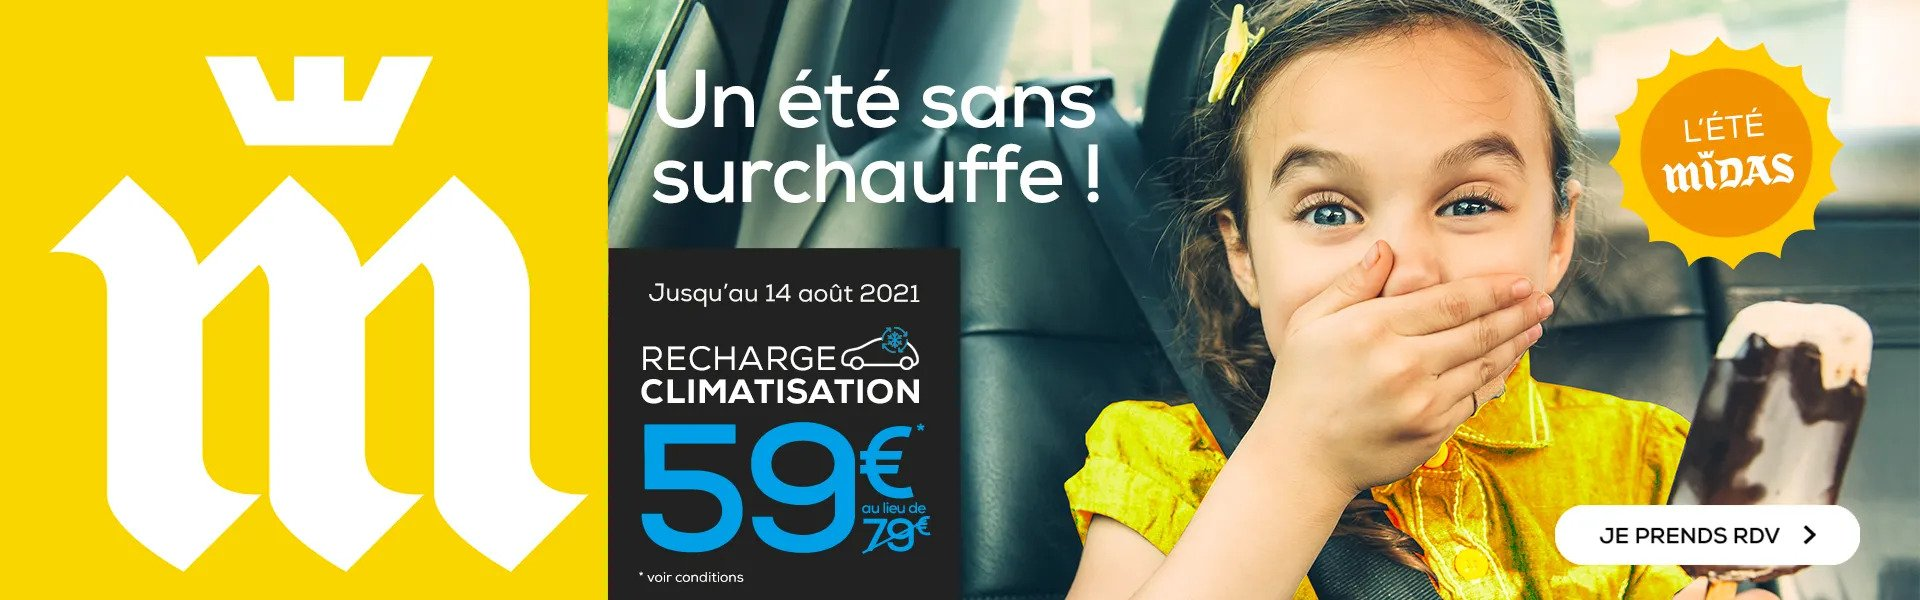 RECHARGE CLIM 59€